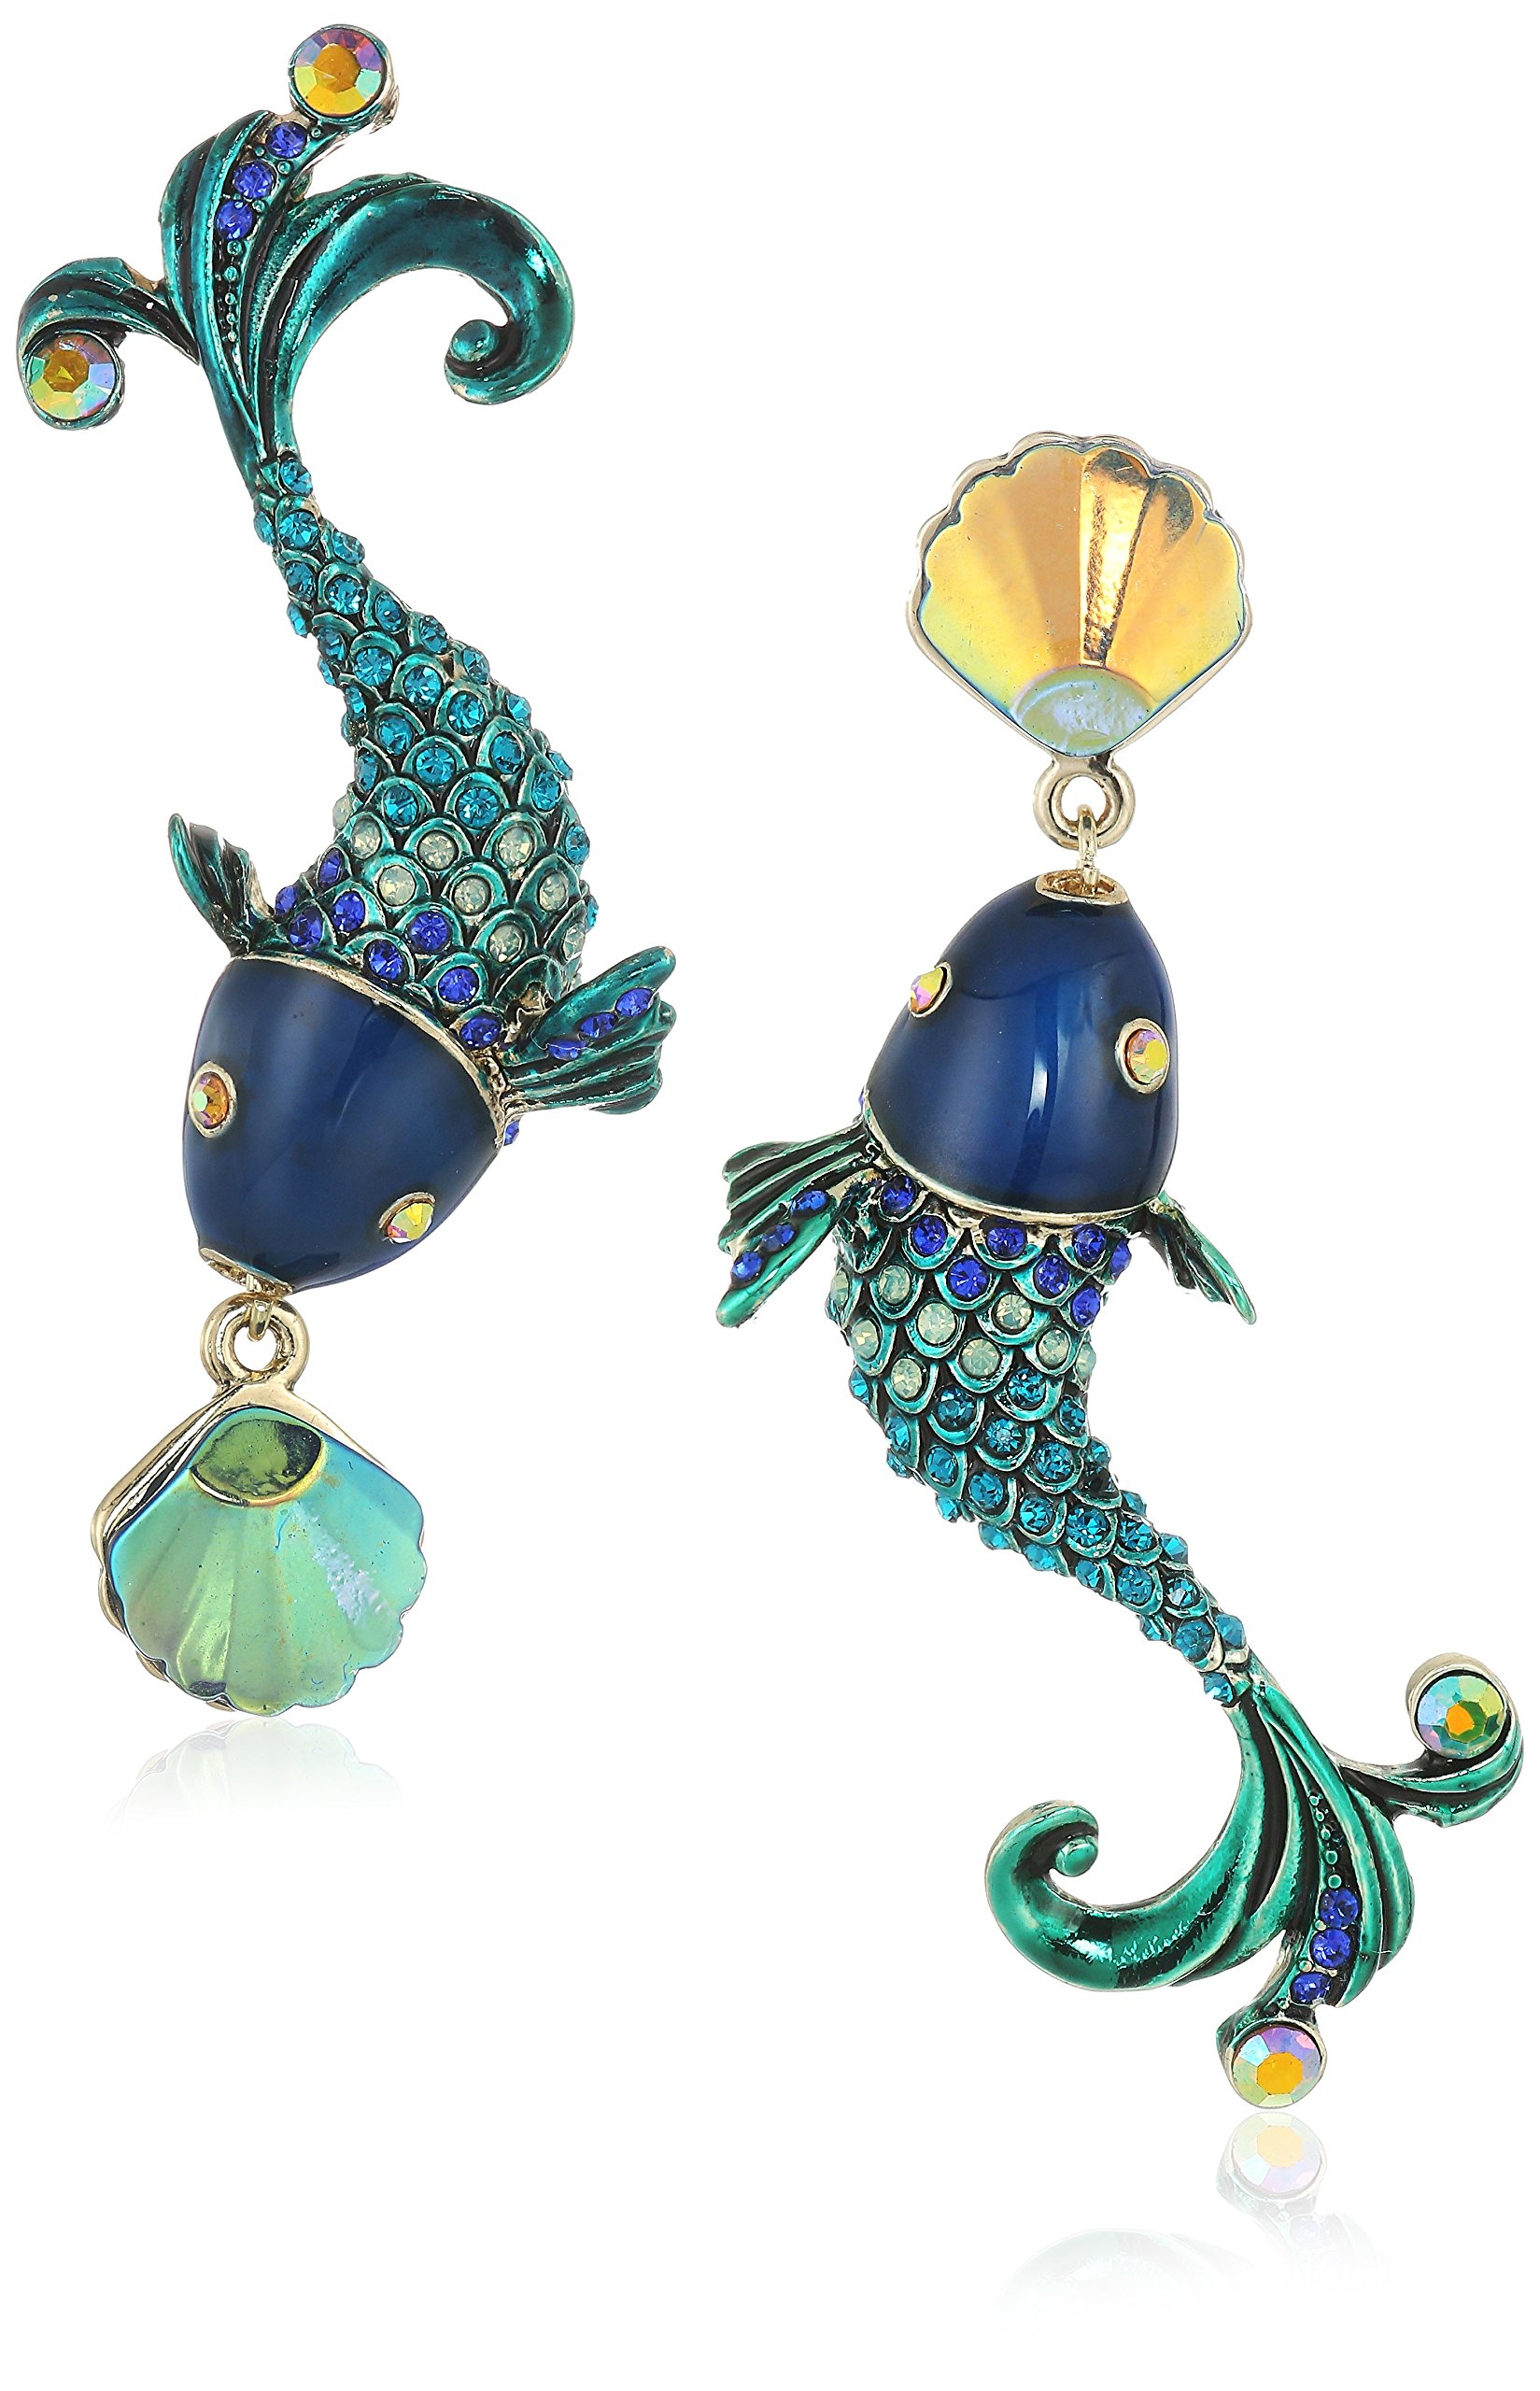 Betsey Johnson Women's Crabby Couture Colorful Fish Mismatch Drop Earrings, Green, One Size